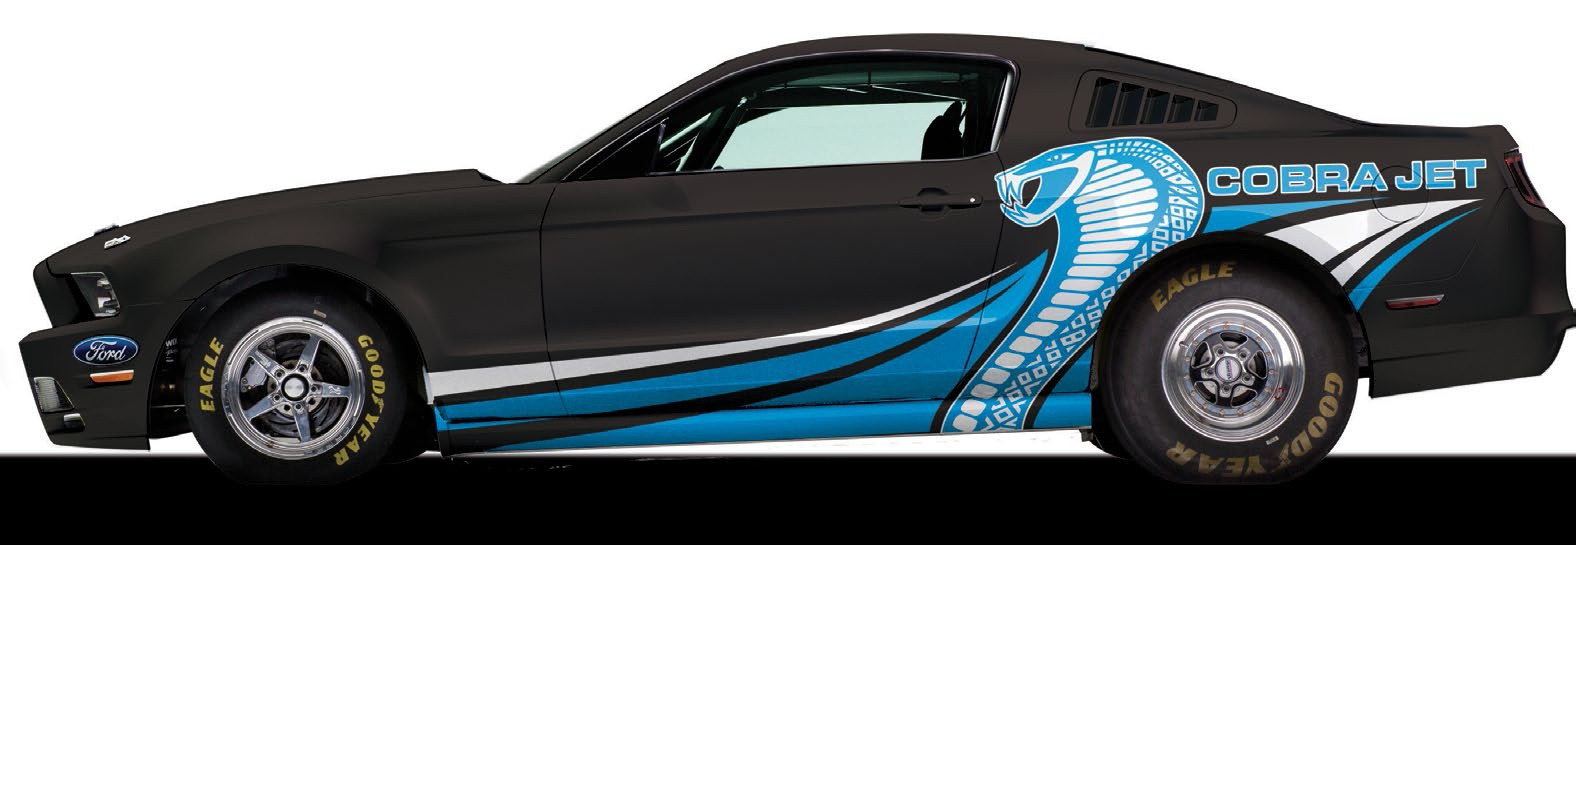 2014 Ford Mustang Cobra Jet Details Announced